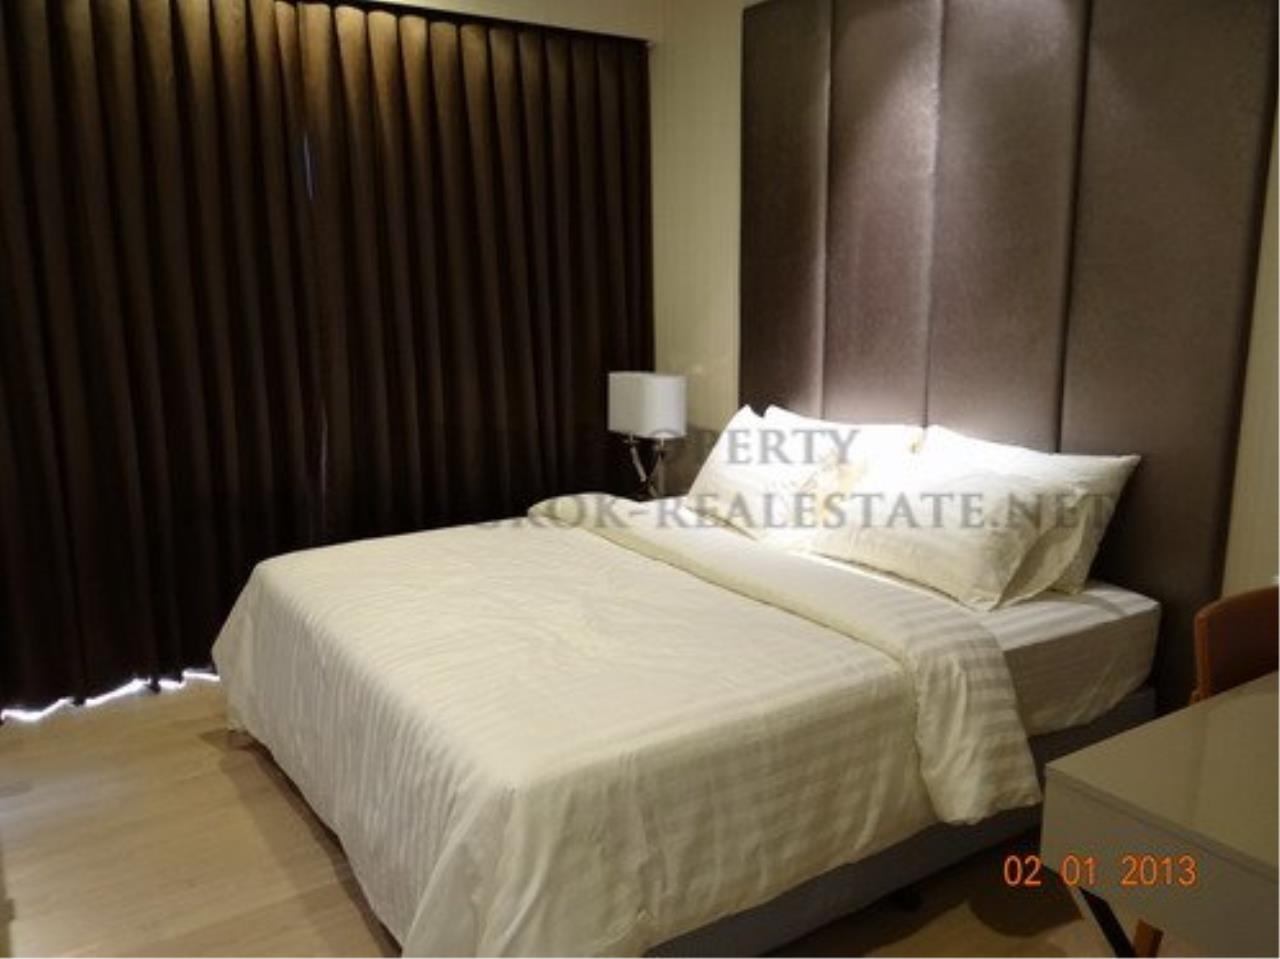 Piri Property Agency's 1 Bed - Noble Refine - Fully furnished for Rent near the Emporium 4